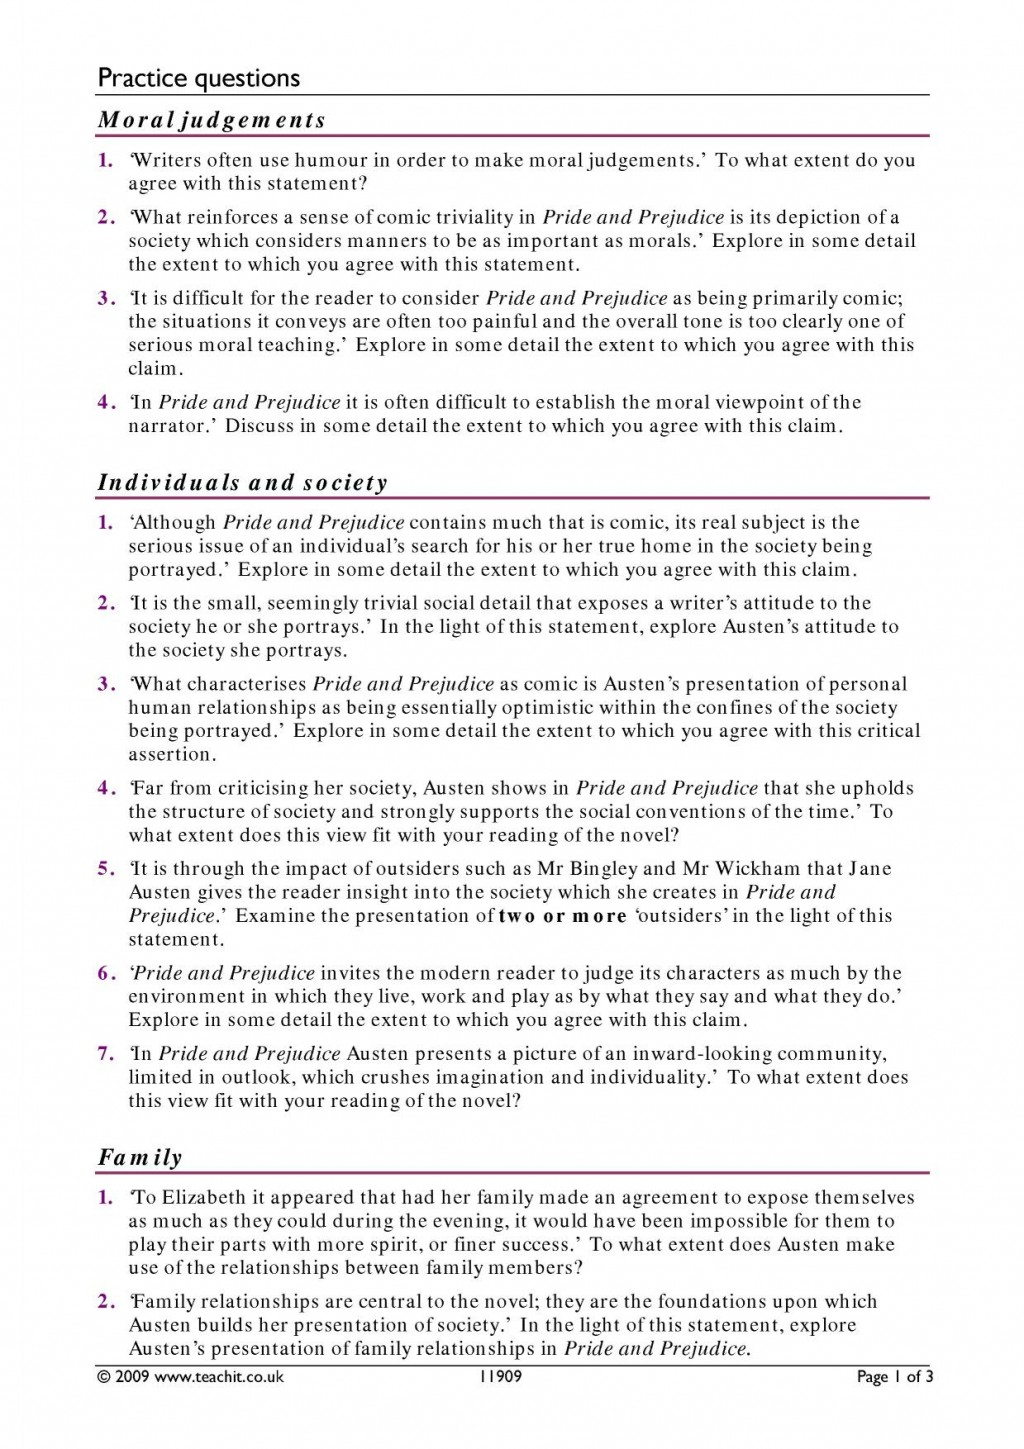 006 Essay Pride And Prejudice By Jane Austen Ks3 Write An On Goes Before Fall X My Nepal Country How To Outstanding Questions Answers Aqa Good For Large